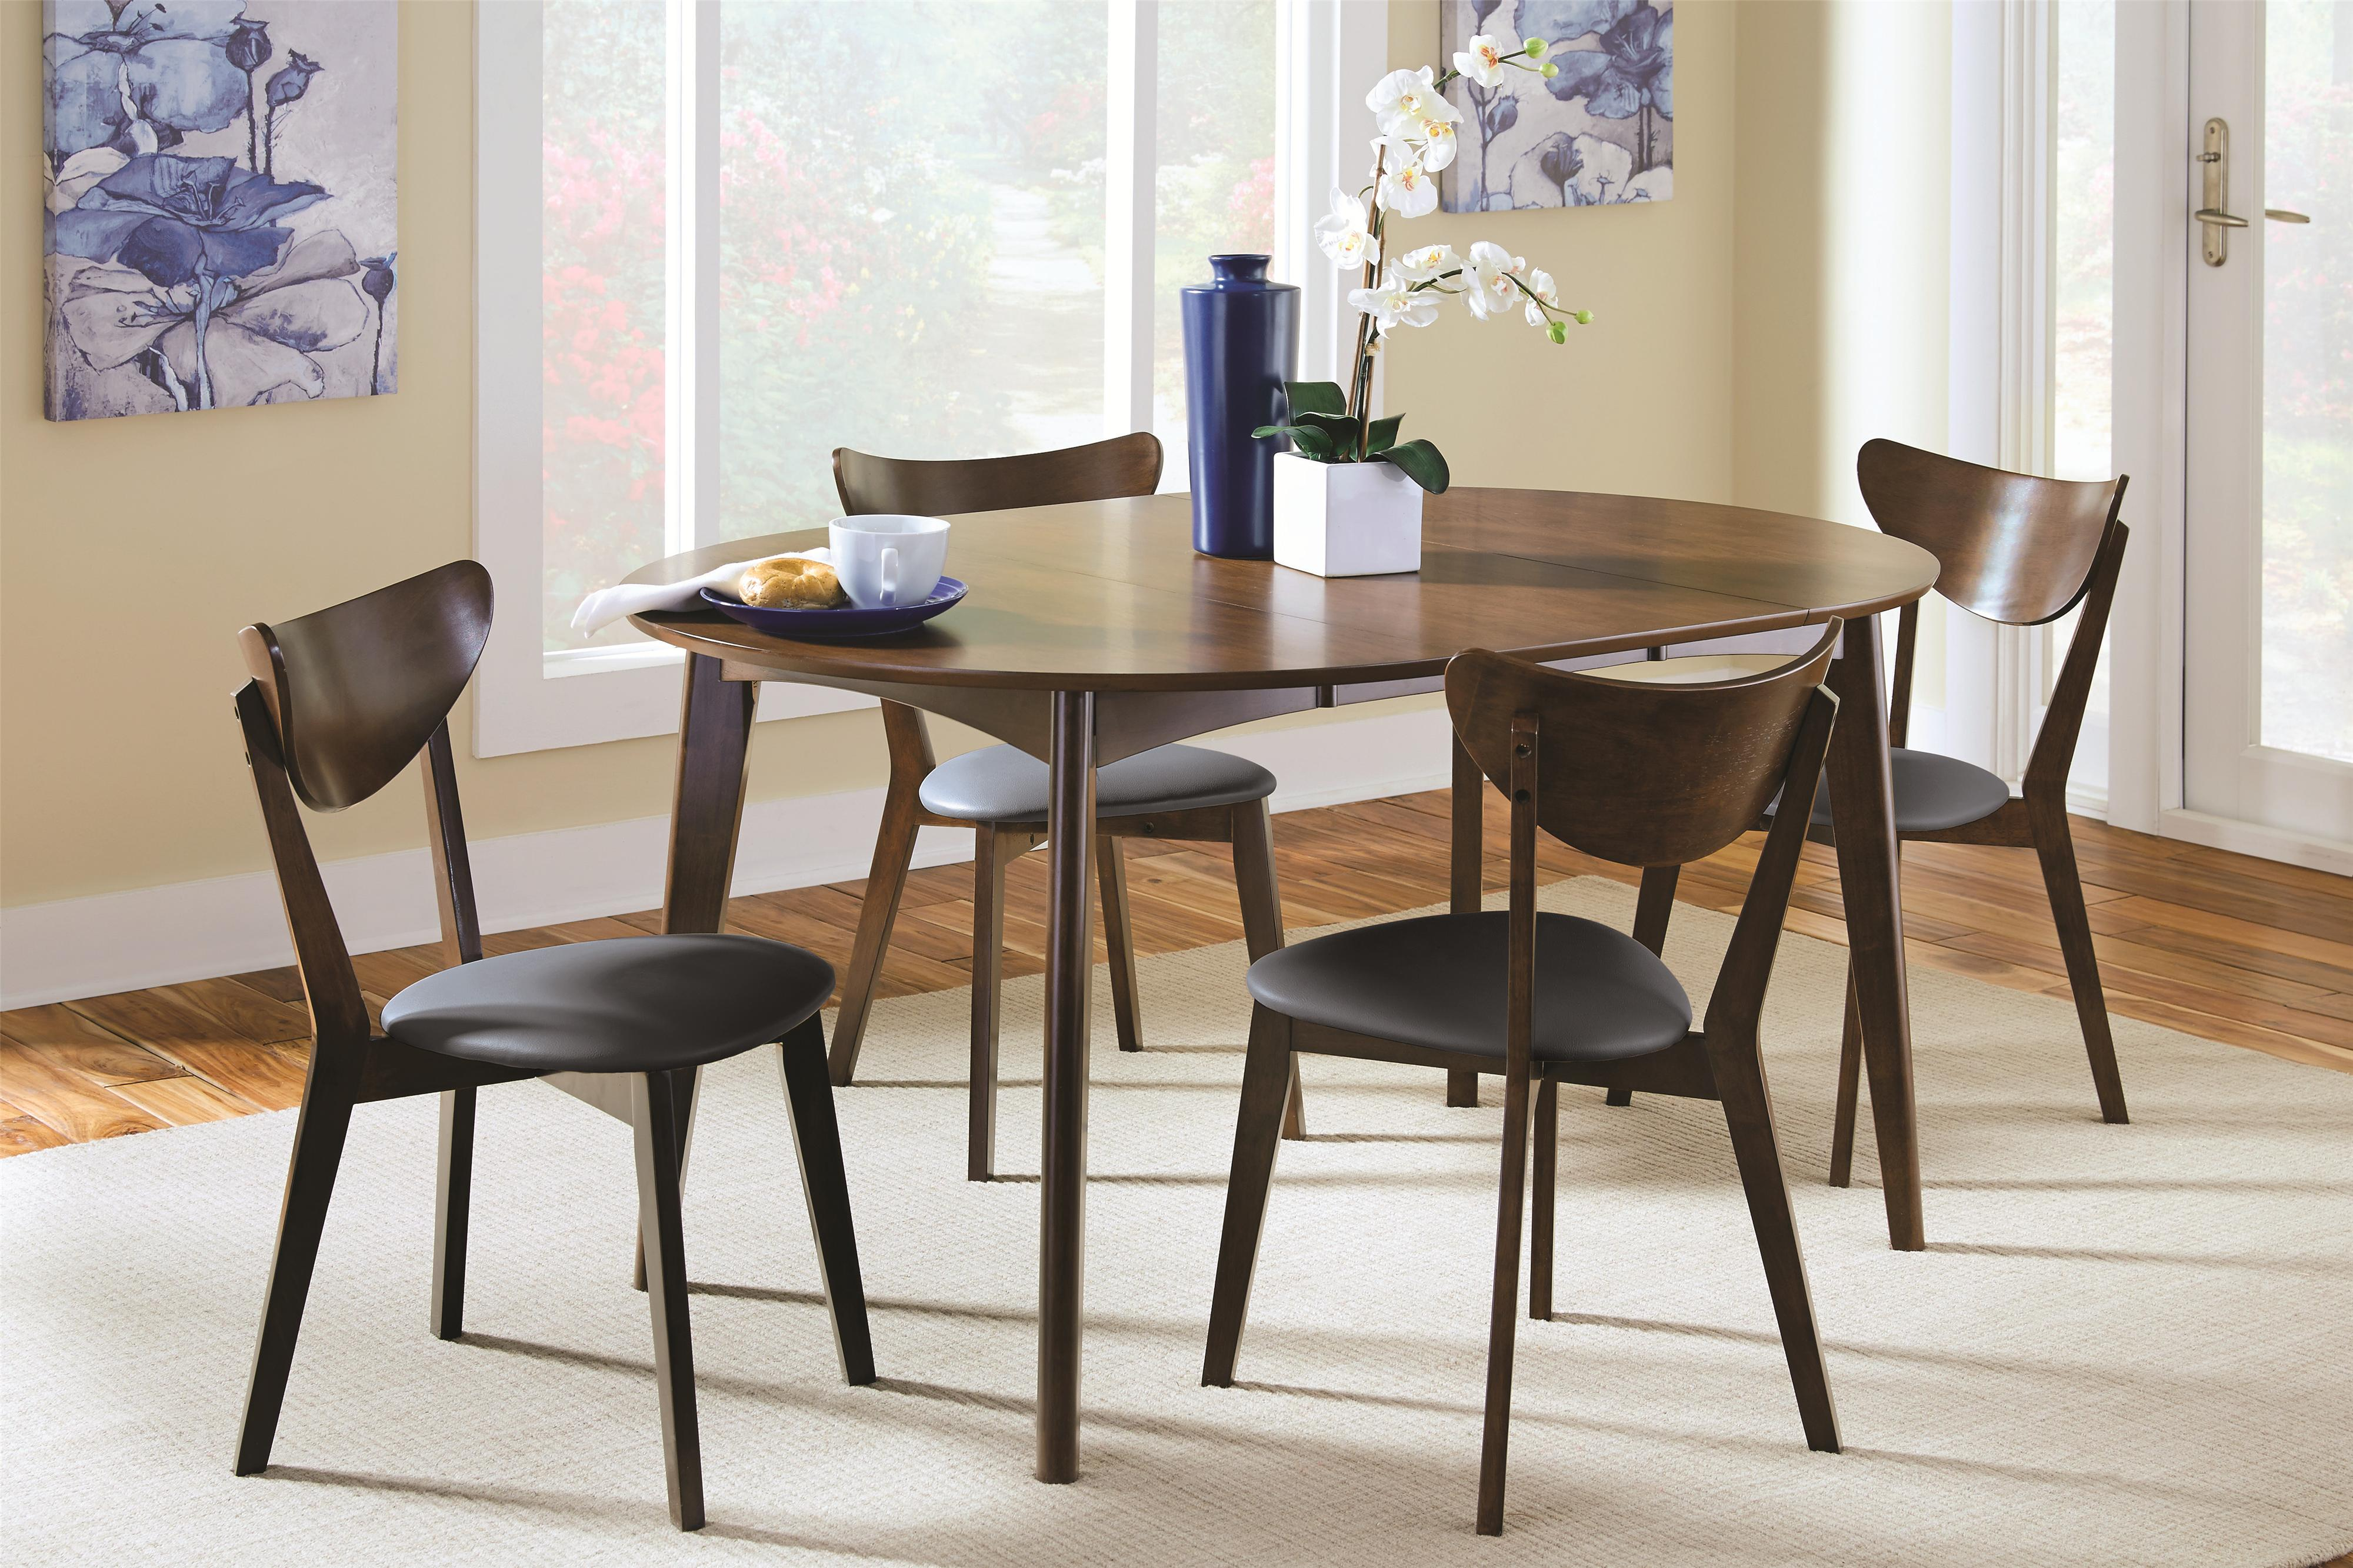 Coaster Malone Mid Century Modern 5 Piece Solid Wood Dining Set Value City Furniture Dining 5 Piece Sets